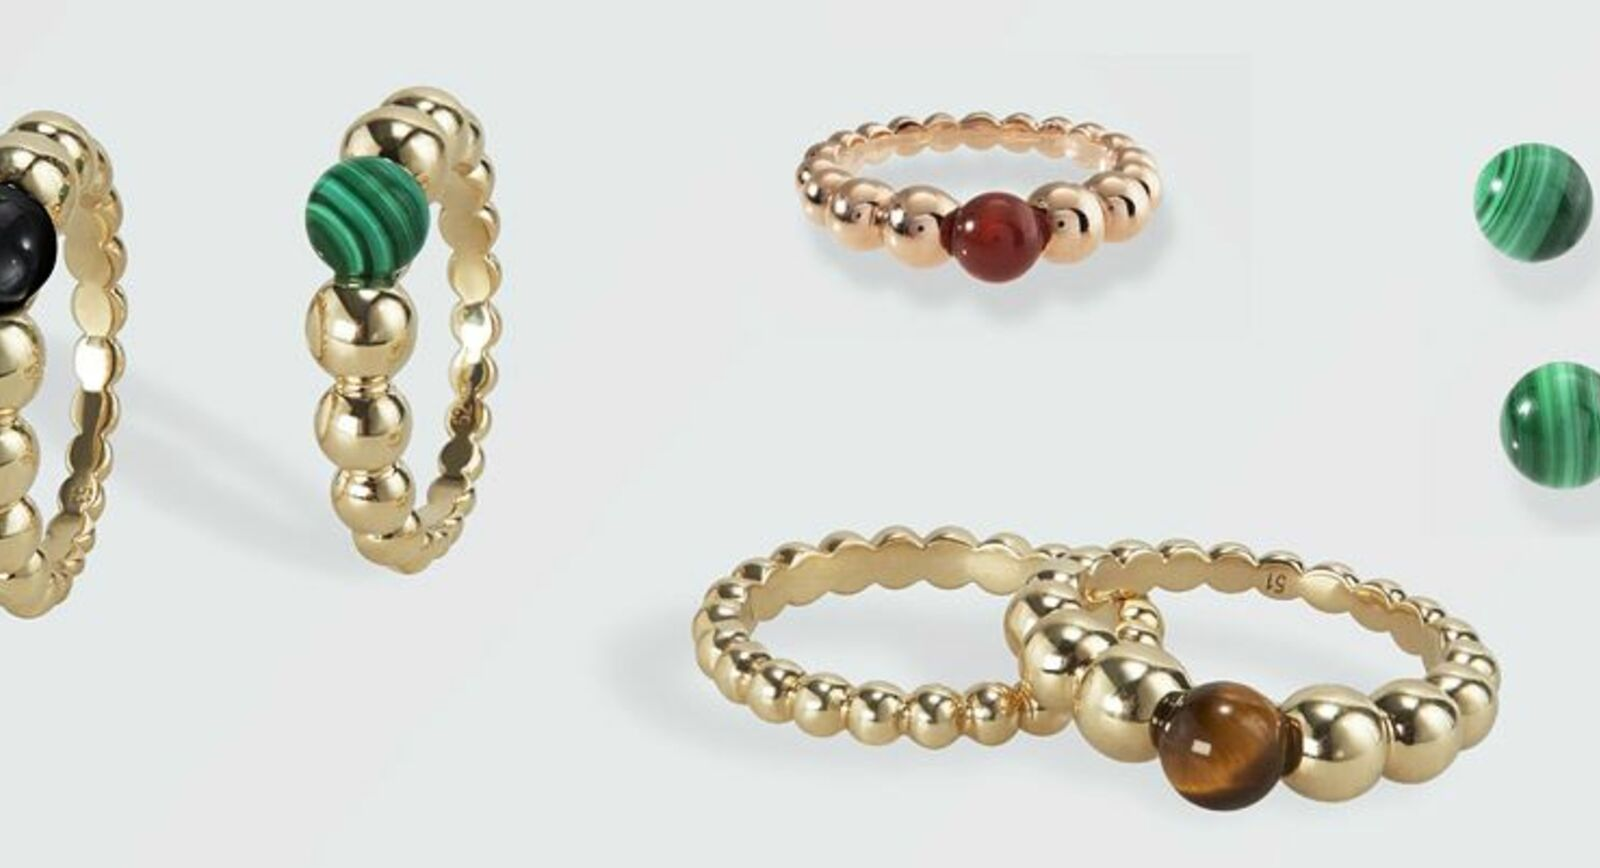 New Perlée Collection by Van Cleef&Arpels, this time with splashes of colour